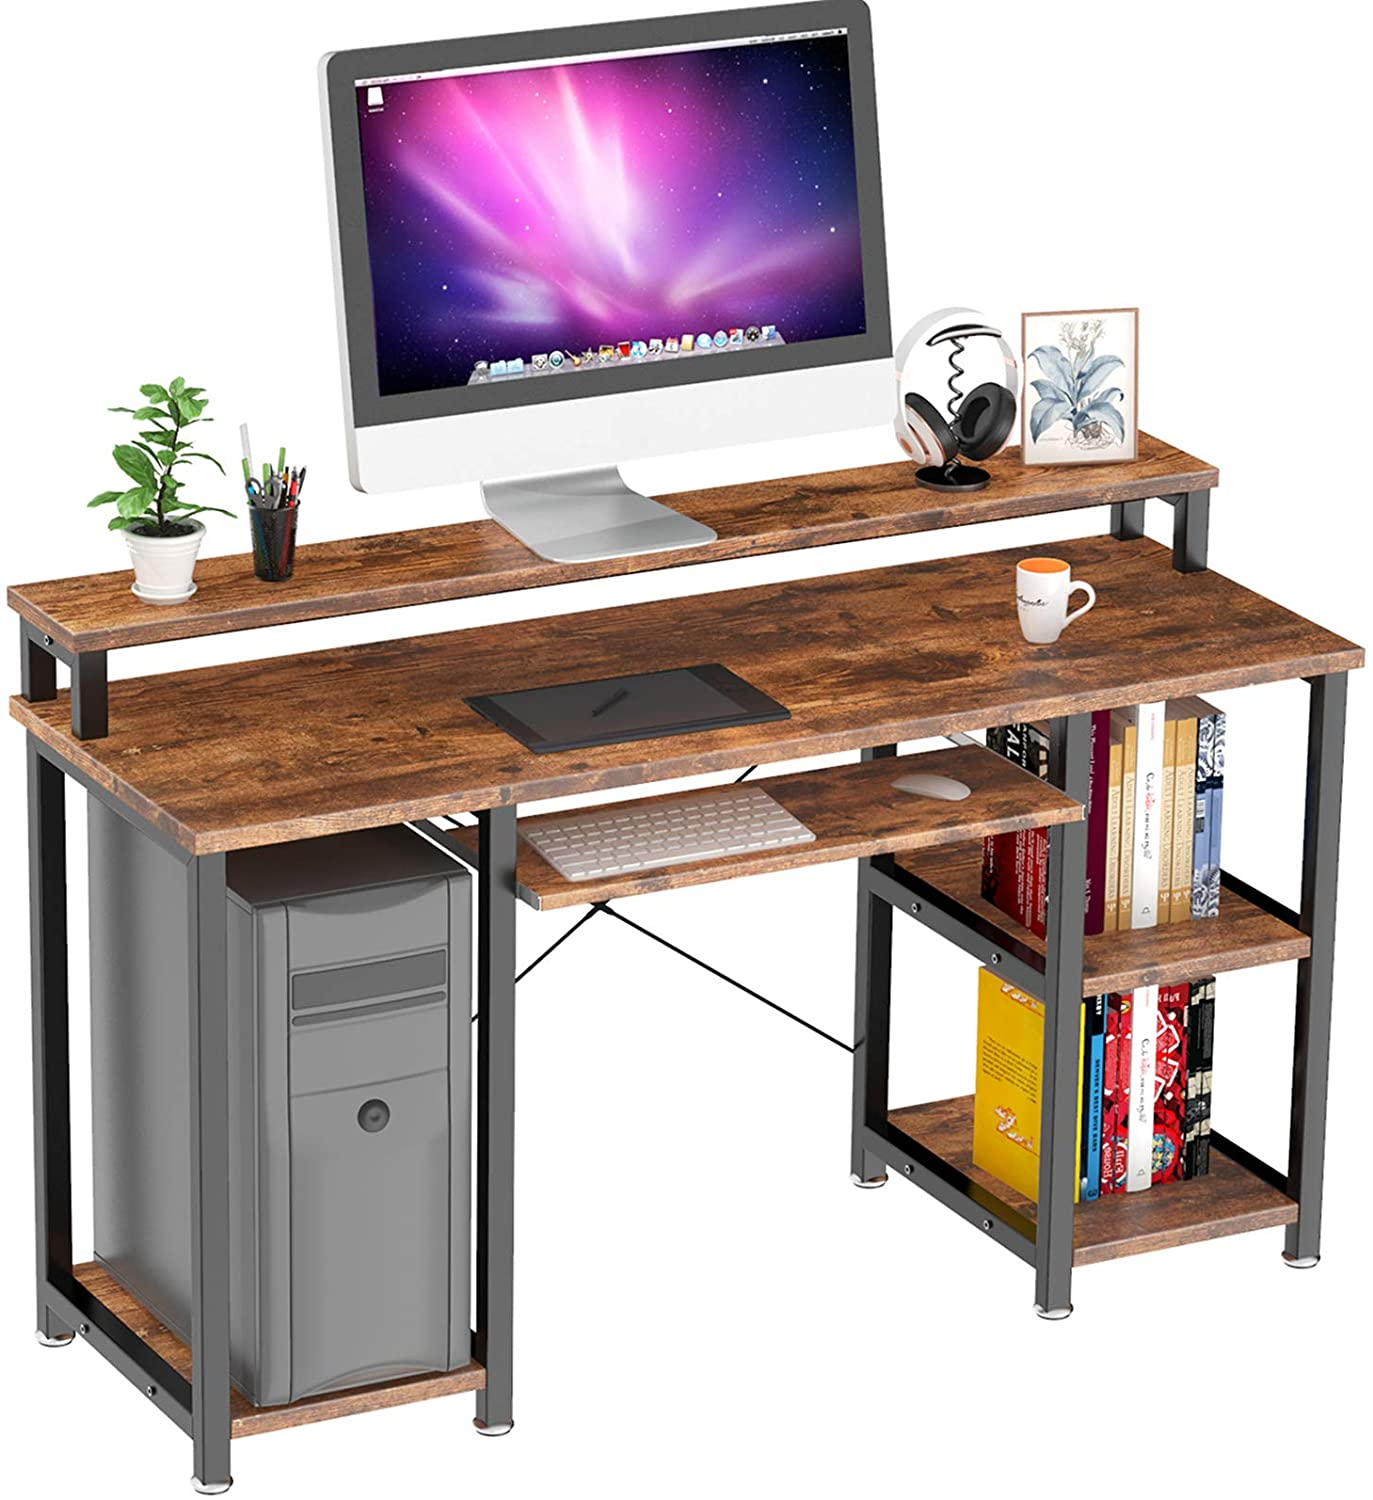 NOBLEWELL Computer Desk with Monitor Stand Storage Shelves Keyboard Tray,47